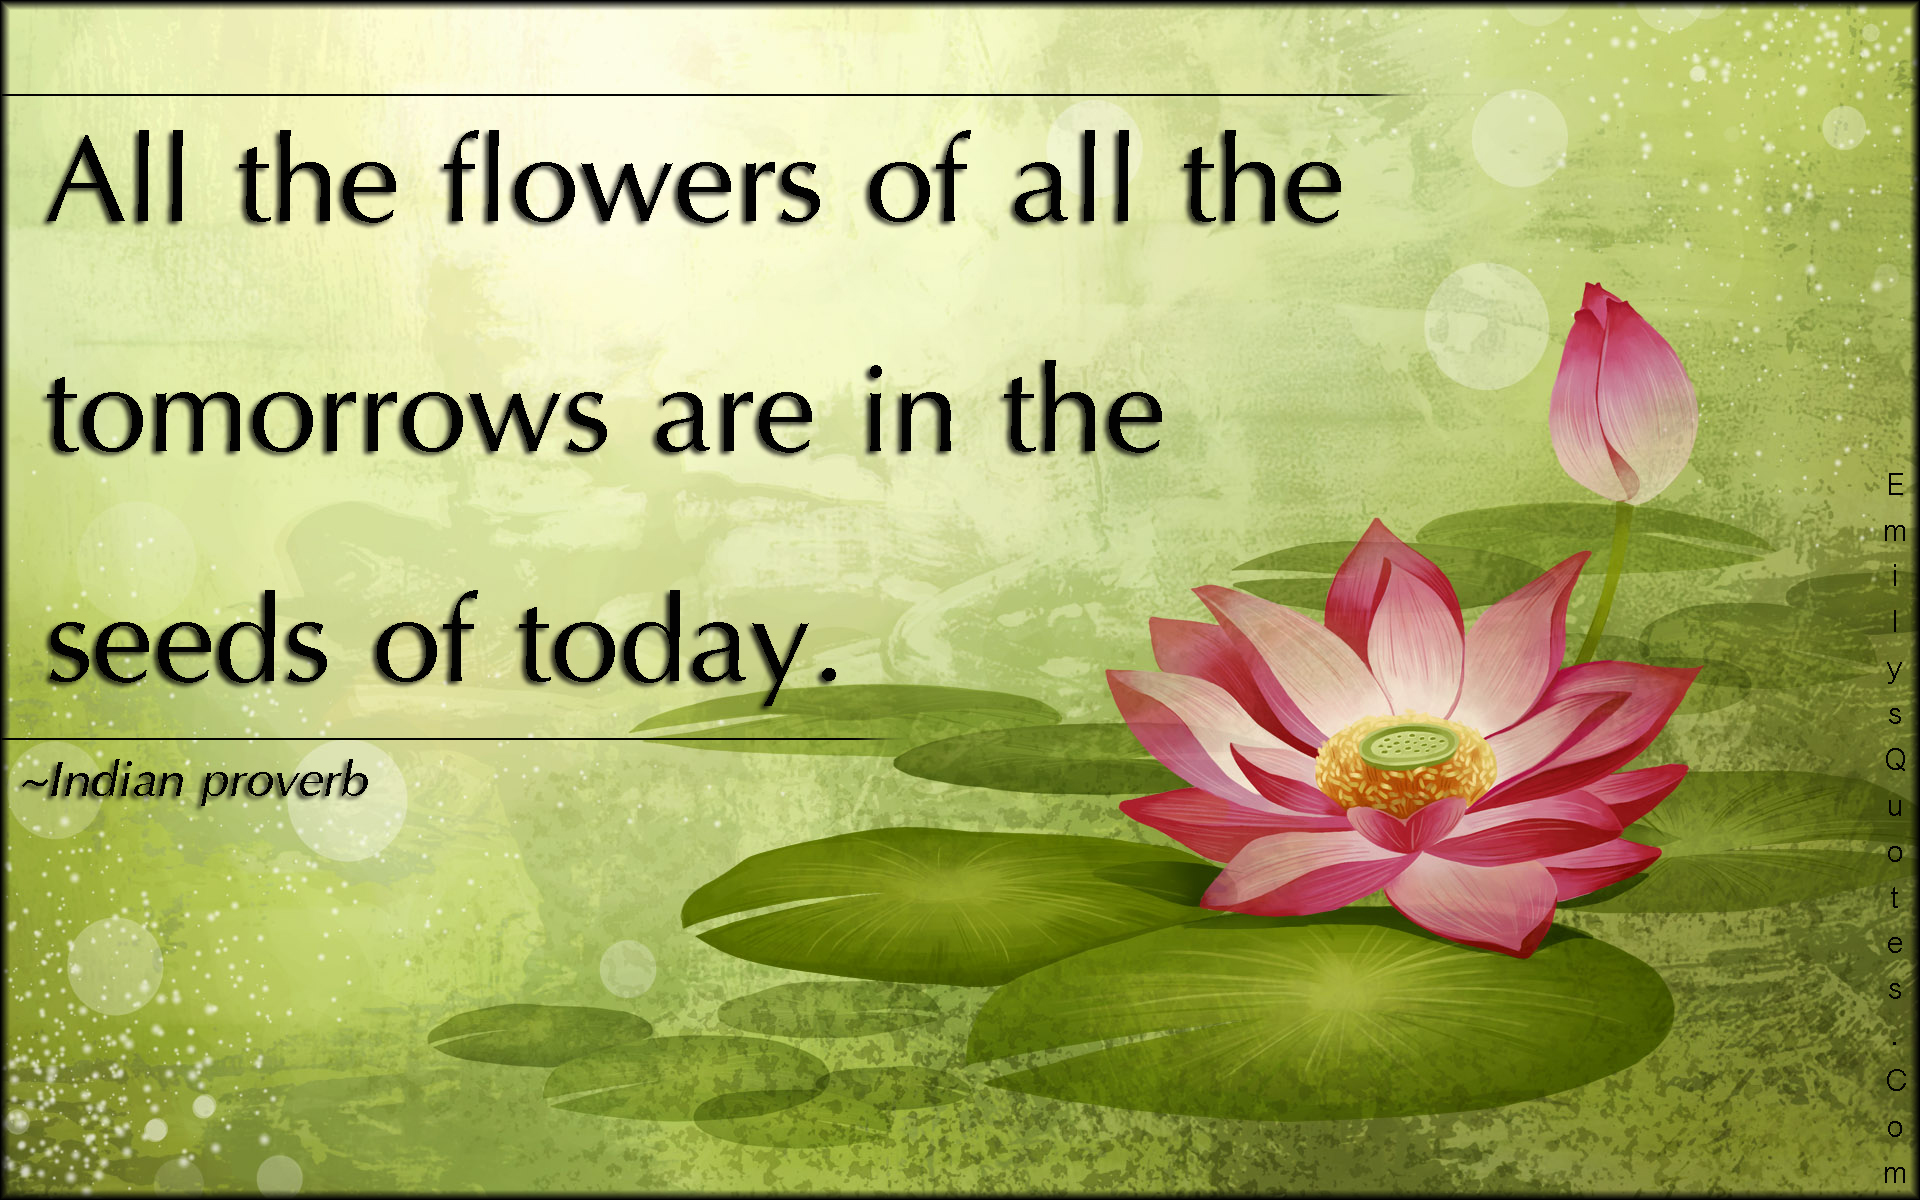 Wisdom About Life Quotes All The Flowers Of All The Tomorrows Are In The Seeds Of Today